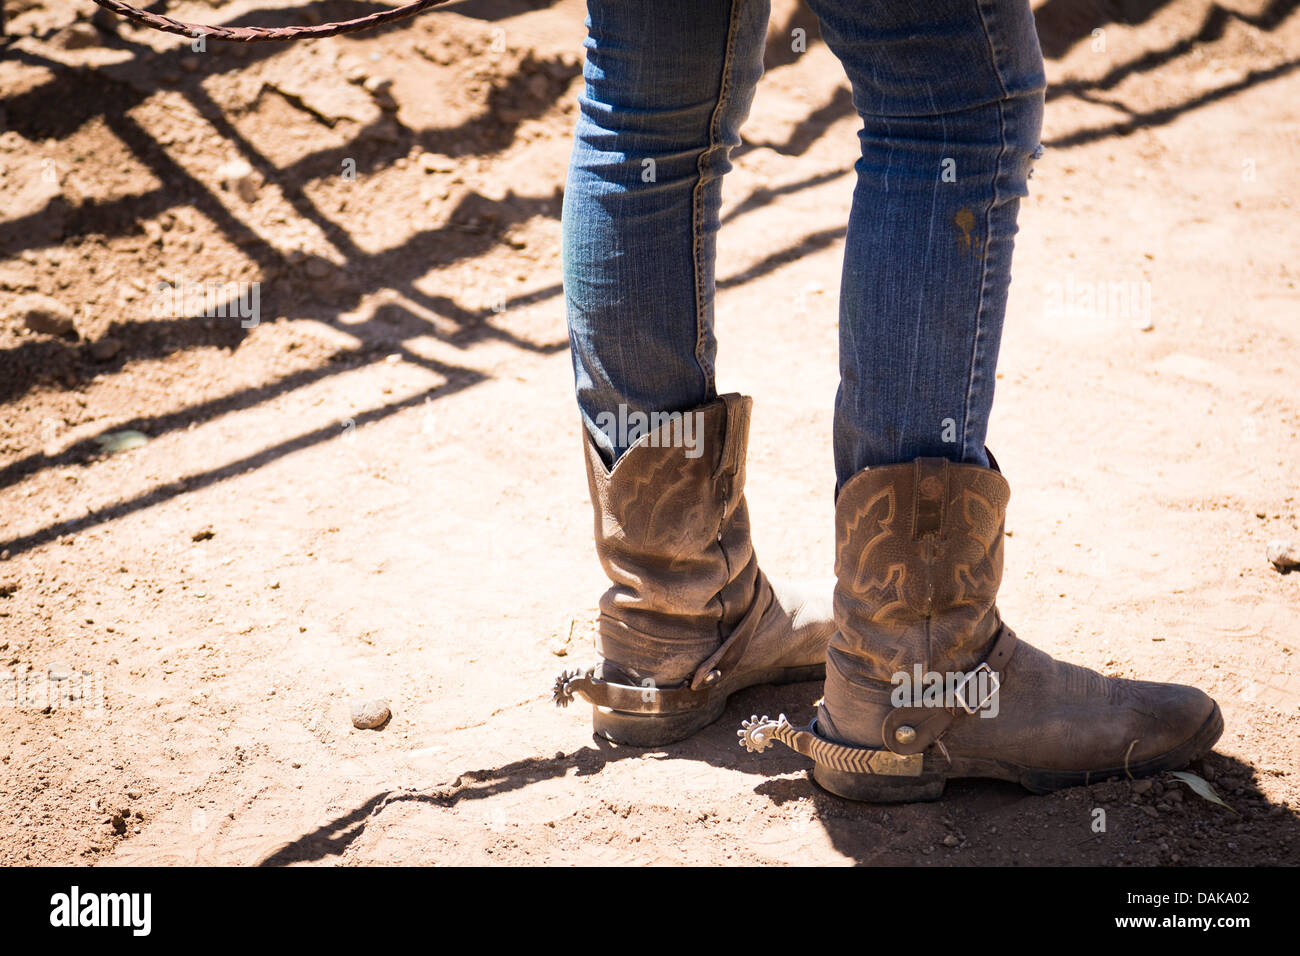 Legs Of A Young Woman Wearing Cowgirl Boots With Spurs Stock Photo